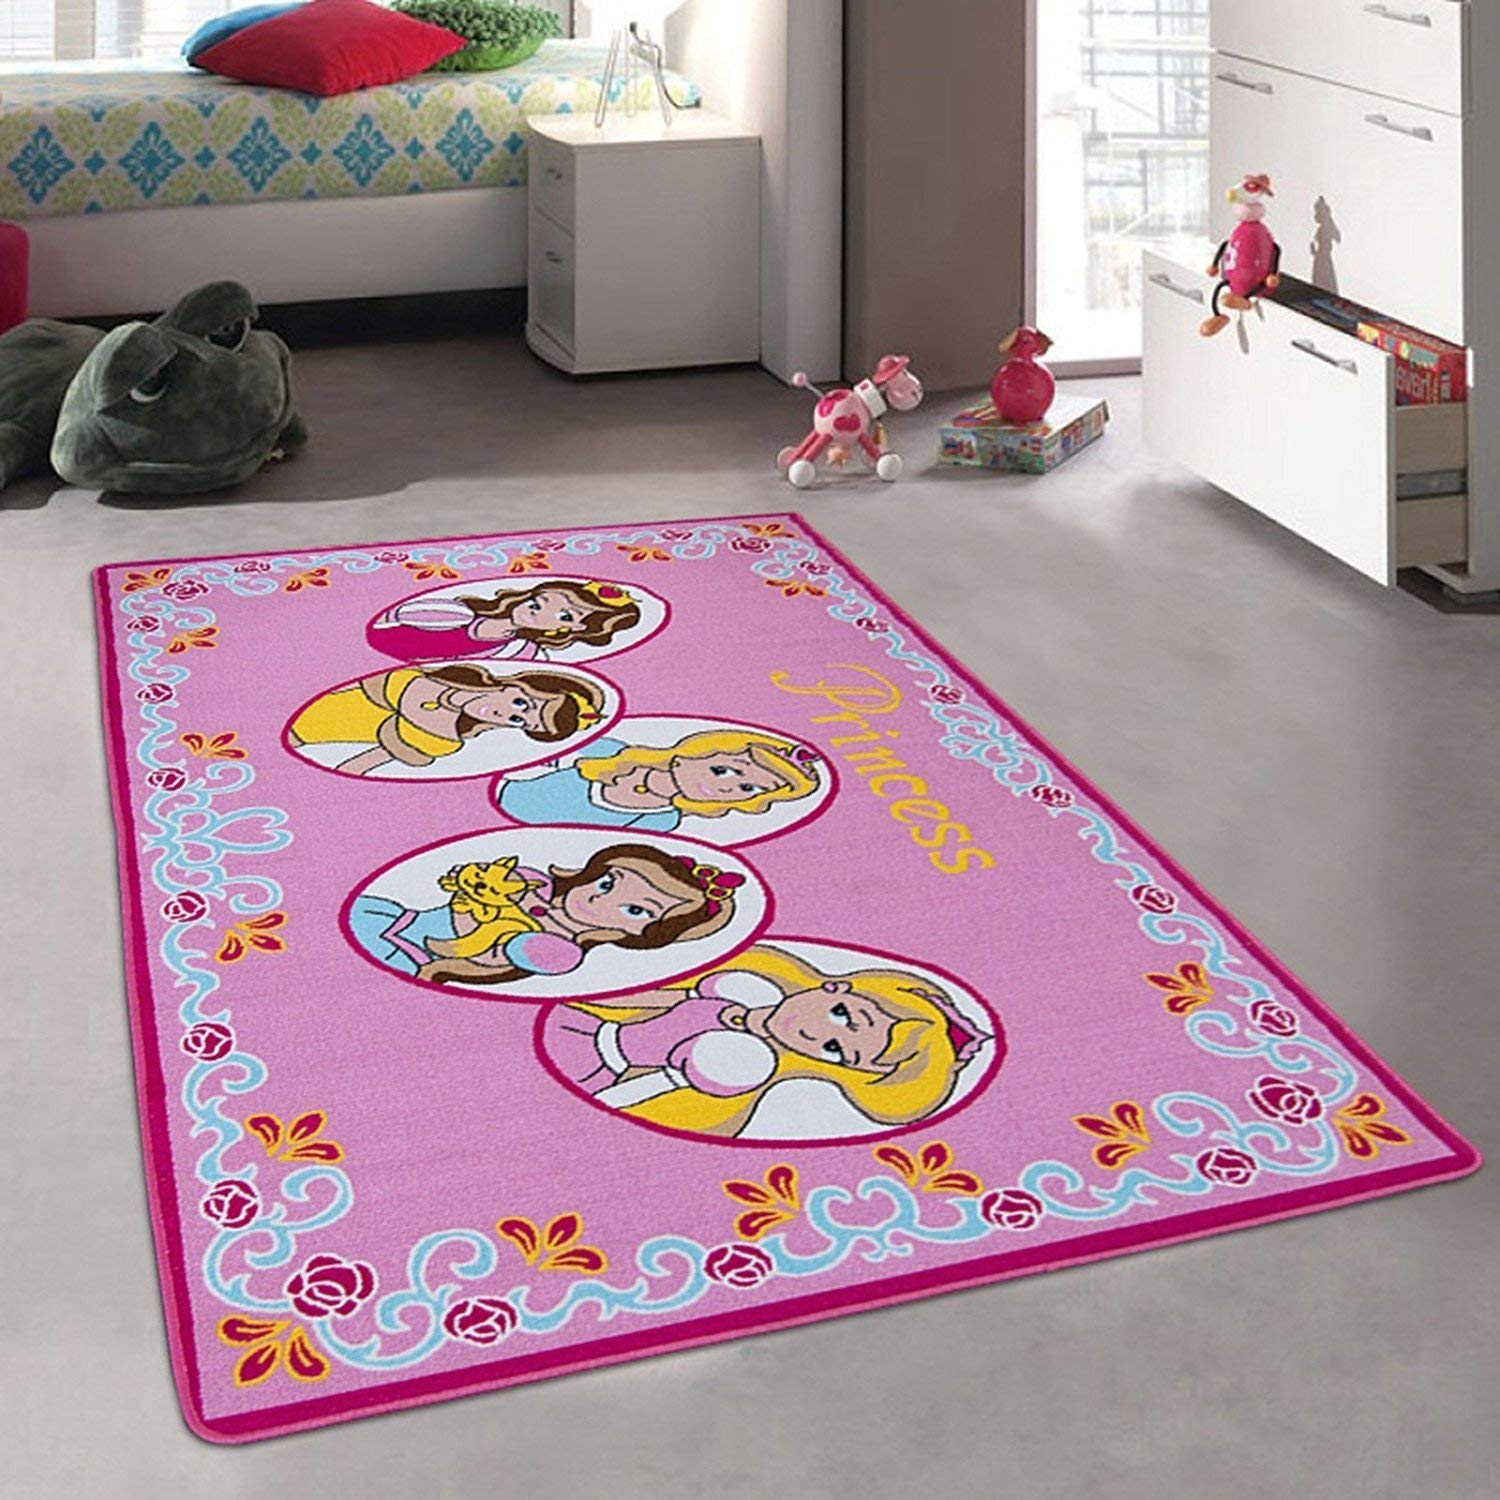 Kids Carpet Girls Bedroom, Designer Figure Children's Rugs Princess Tiara Crown Disney Style Bright Colorful Vibrant Colors (3 Feet X 5 Feet)